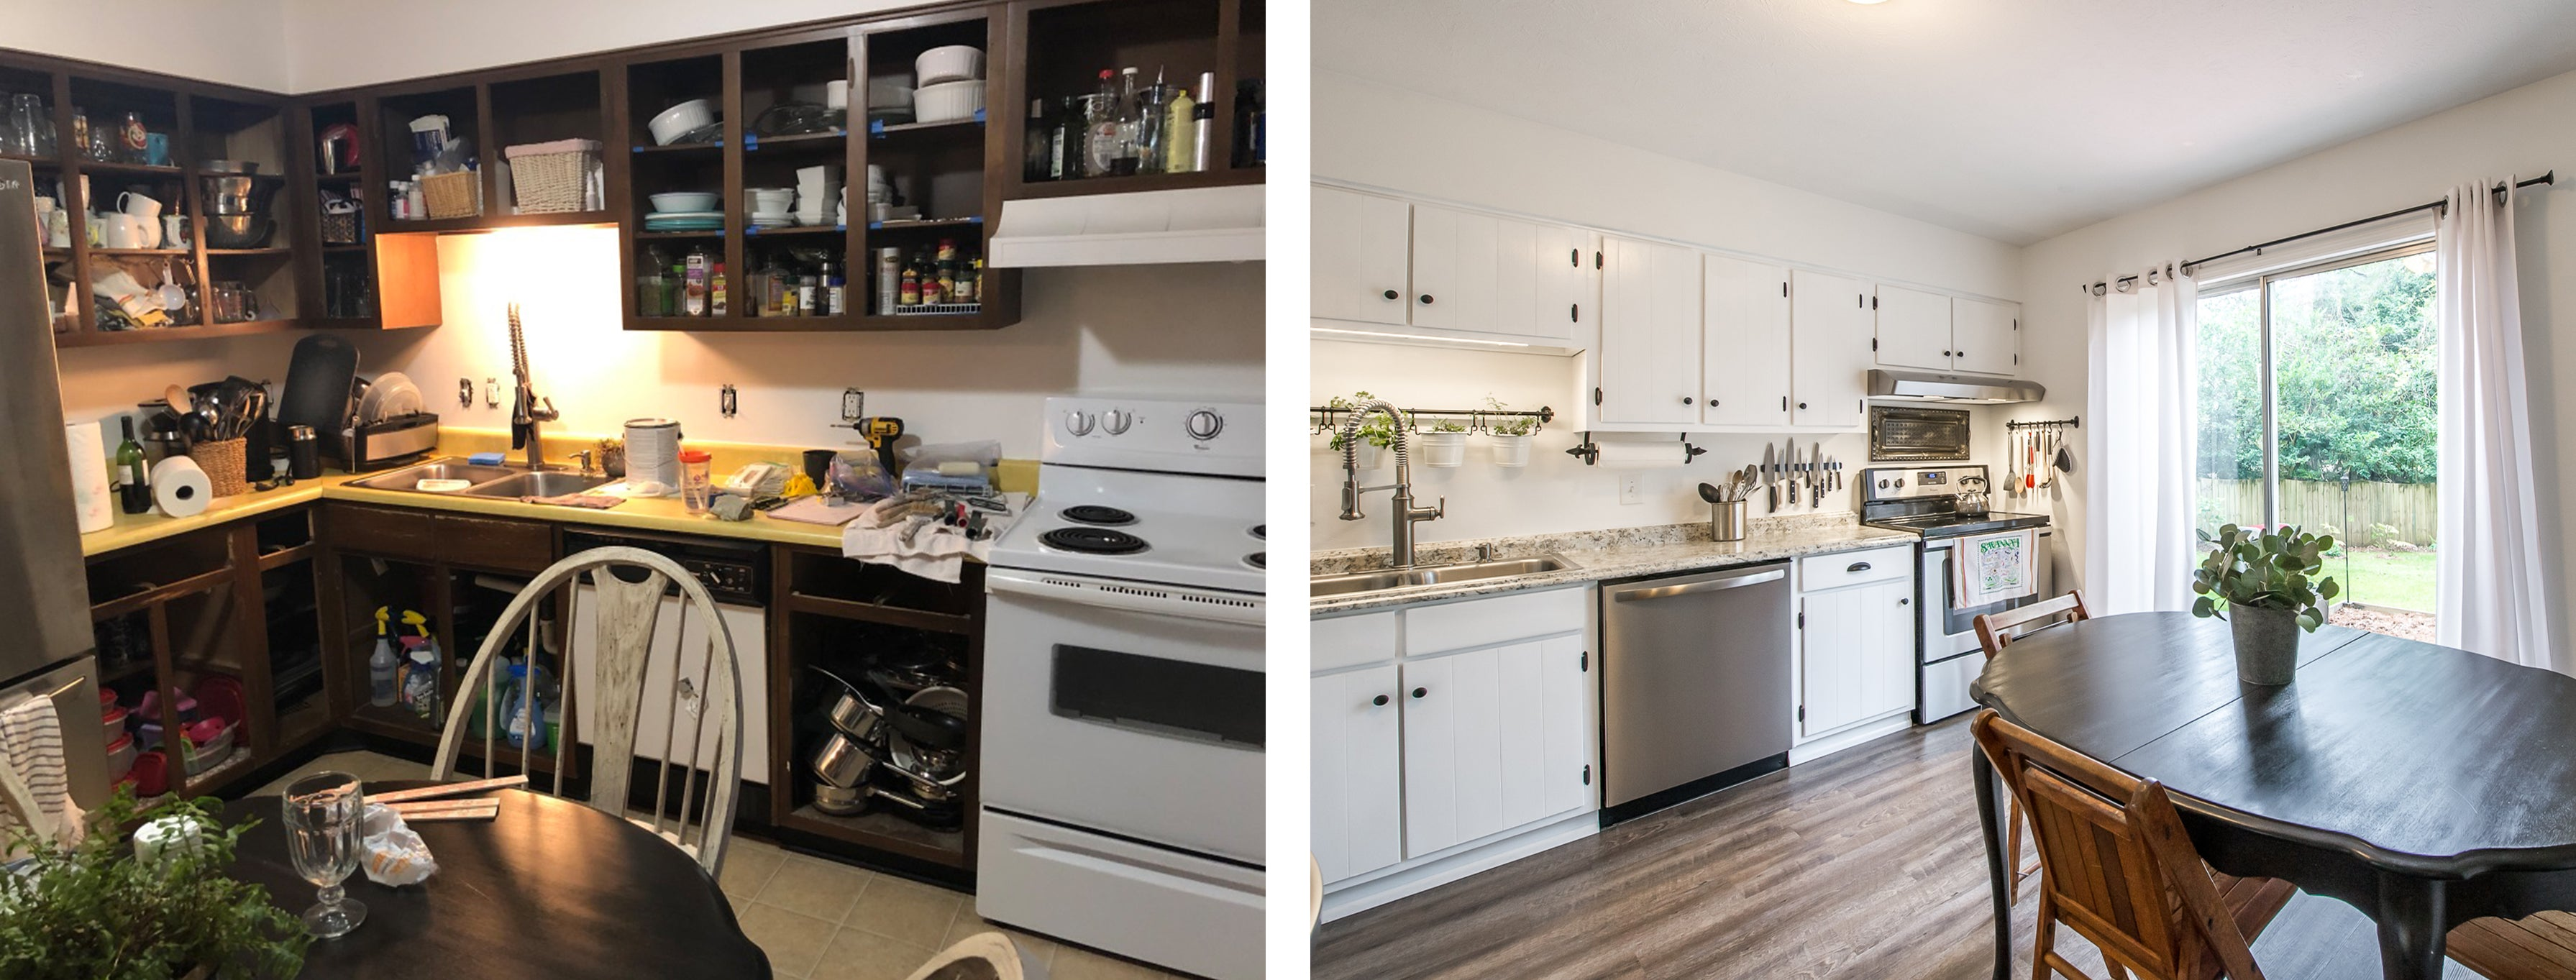 Before and After Kitchen - Melissa Colson